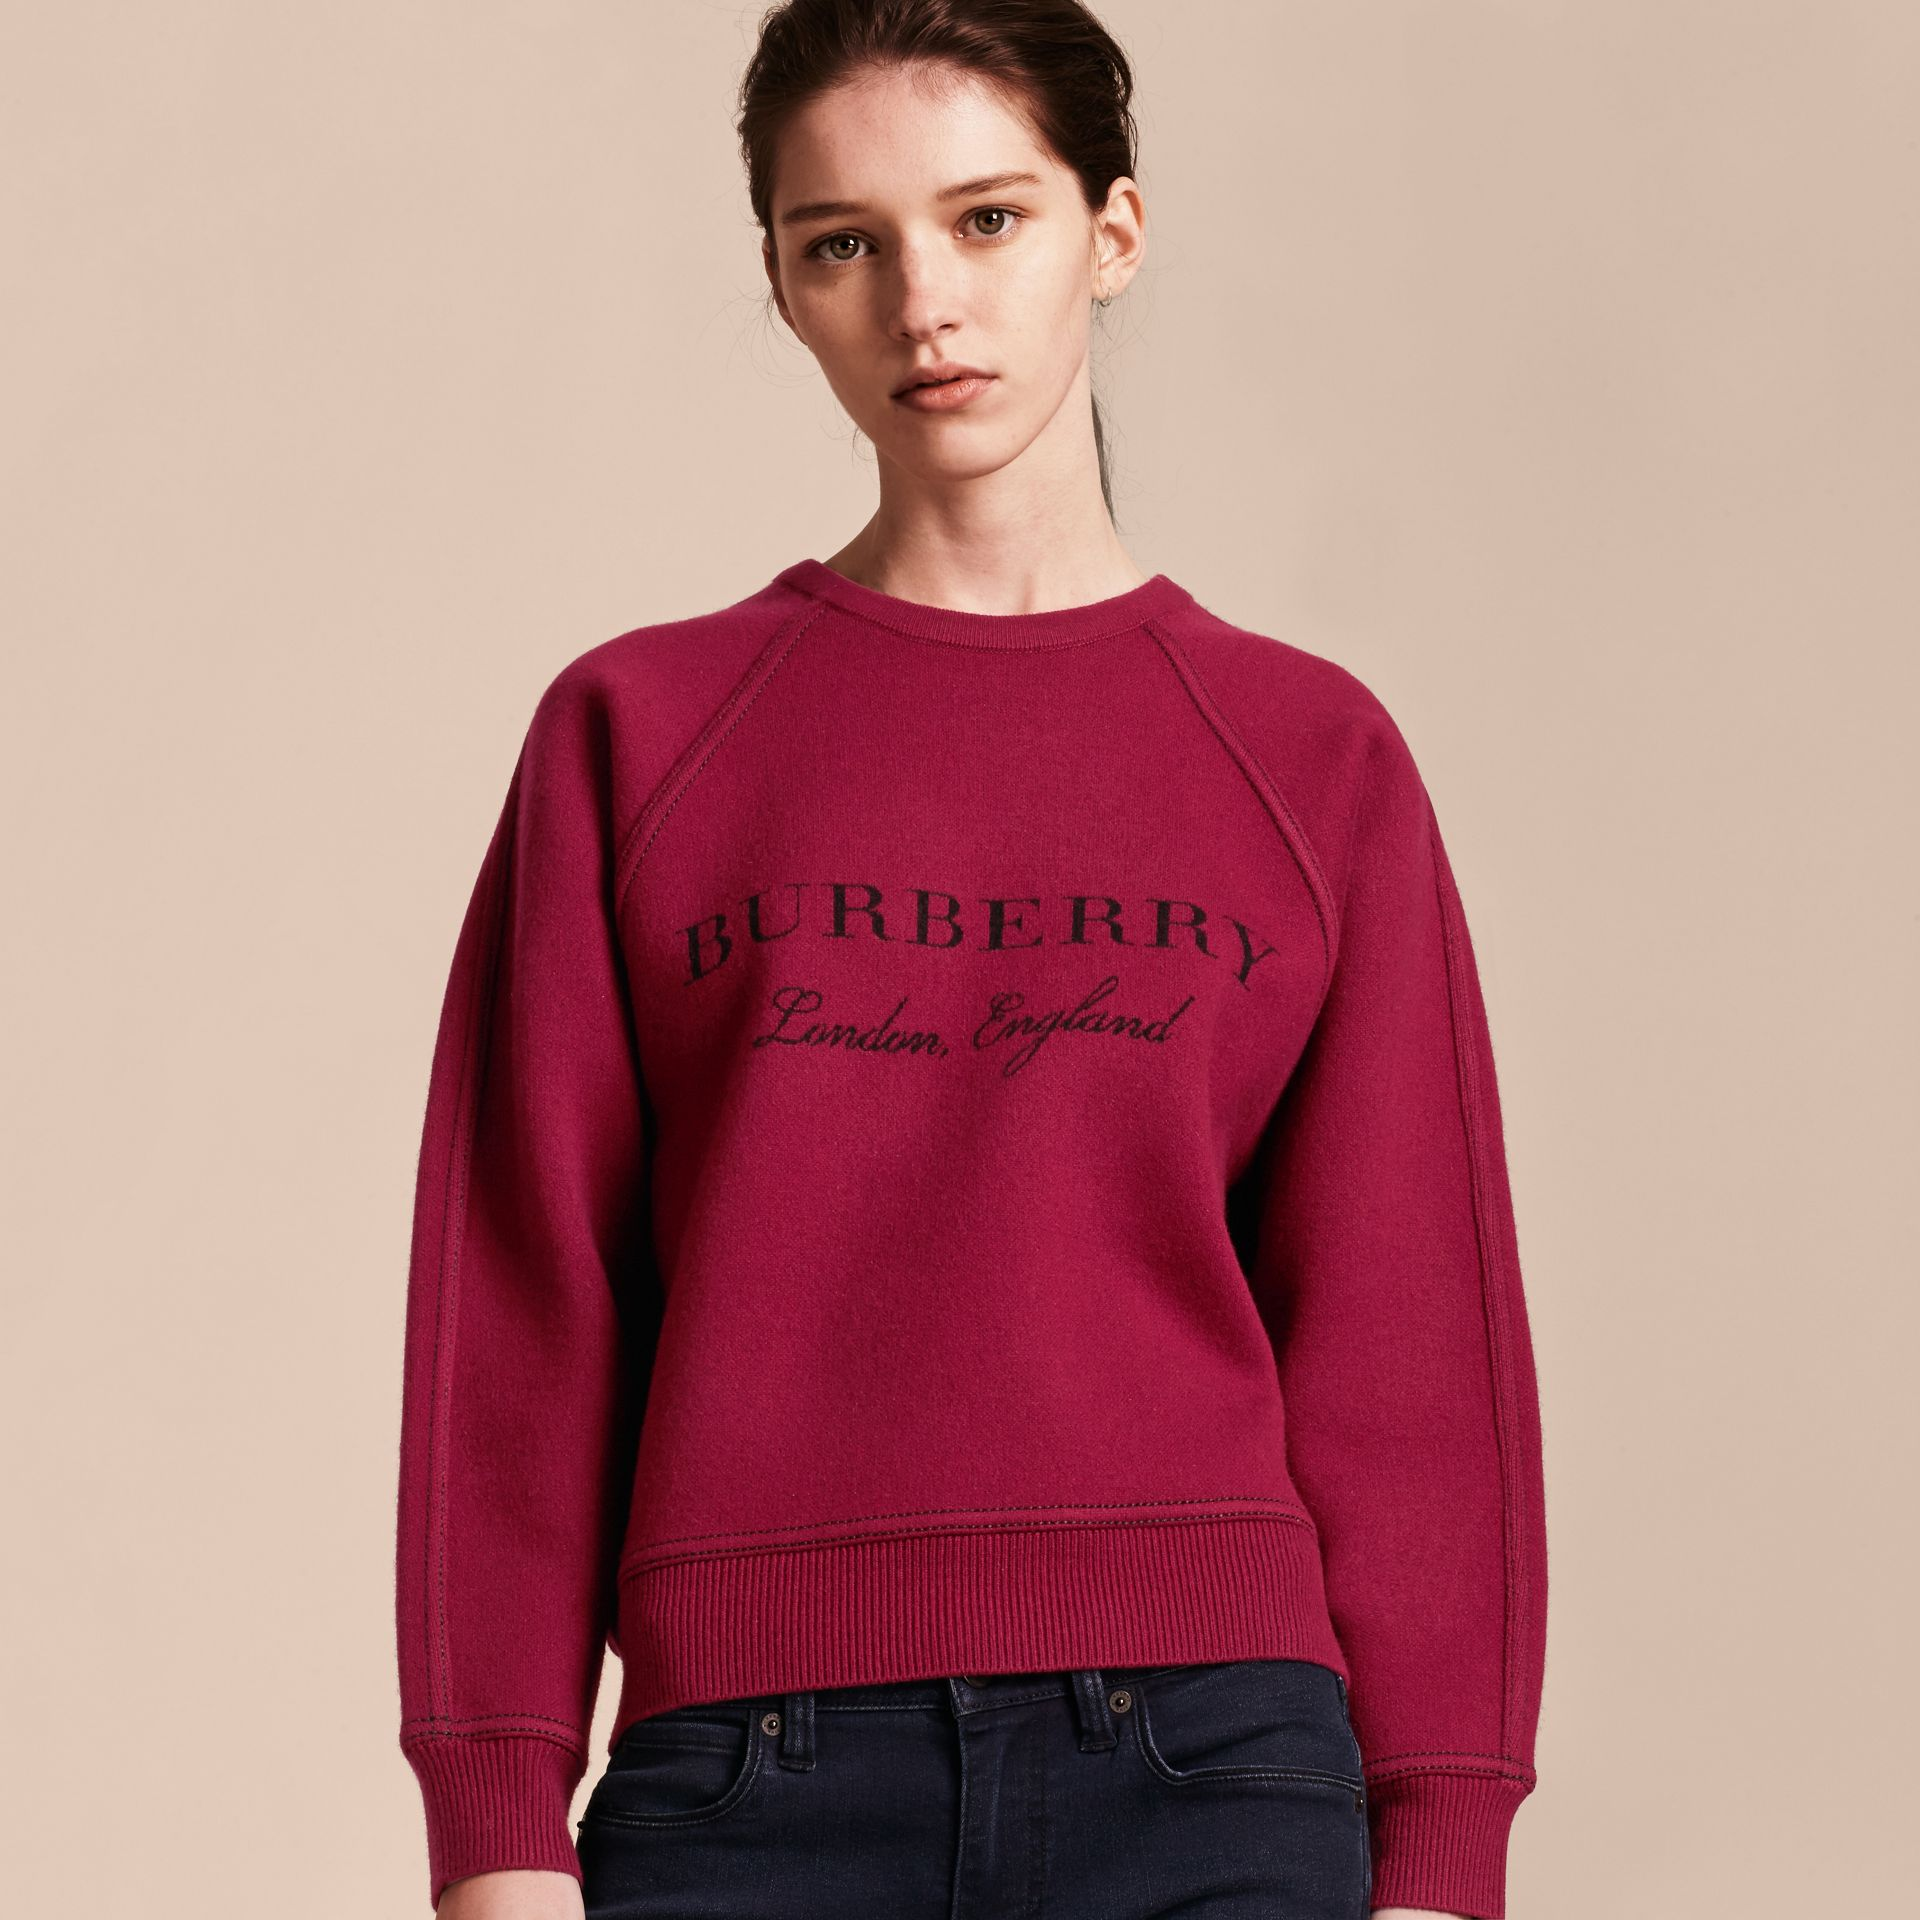 Topstitch Detail Wool Cashmere Blend Sweater in Burgundy - Women | Burberry Canada - gallery image 6